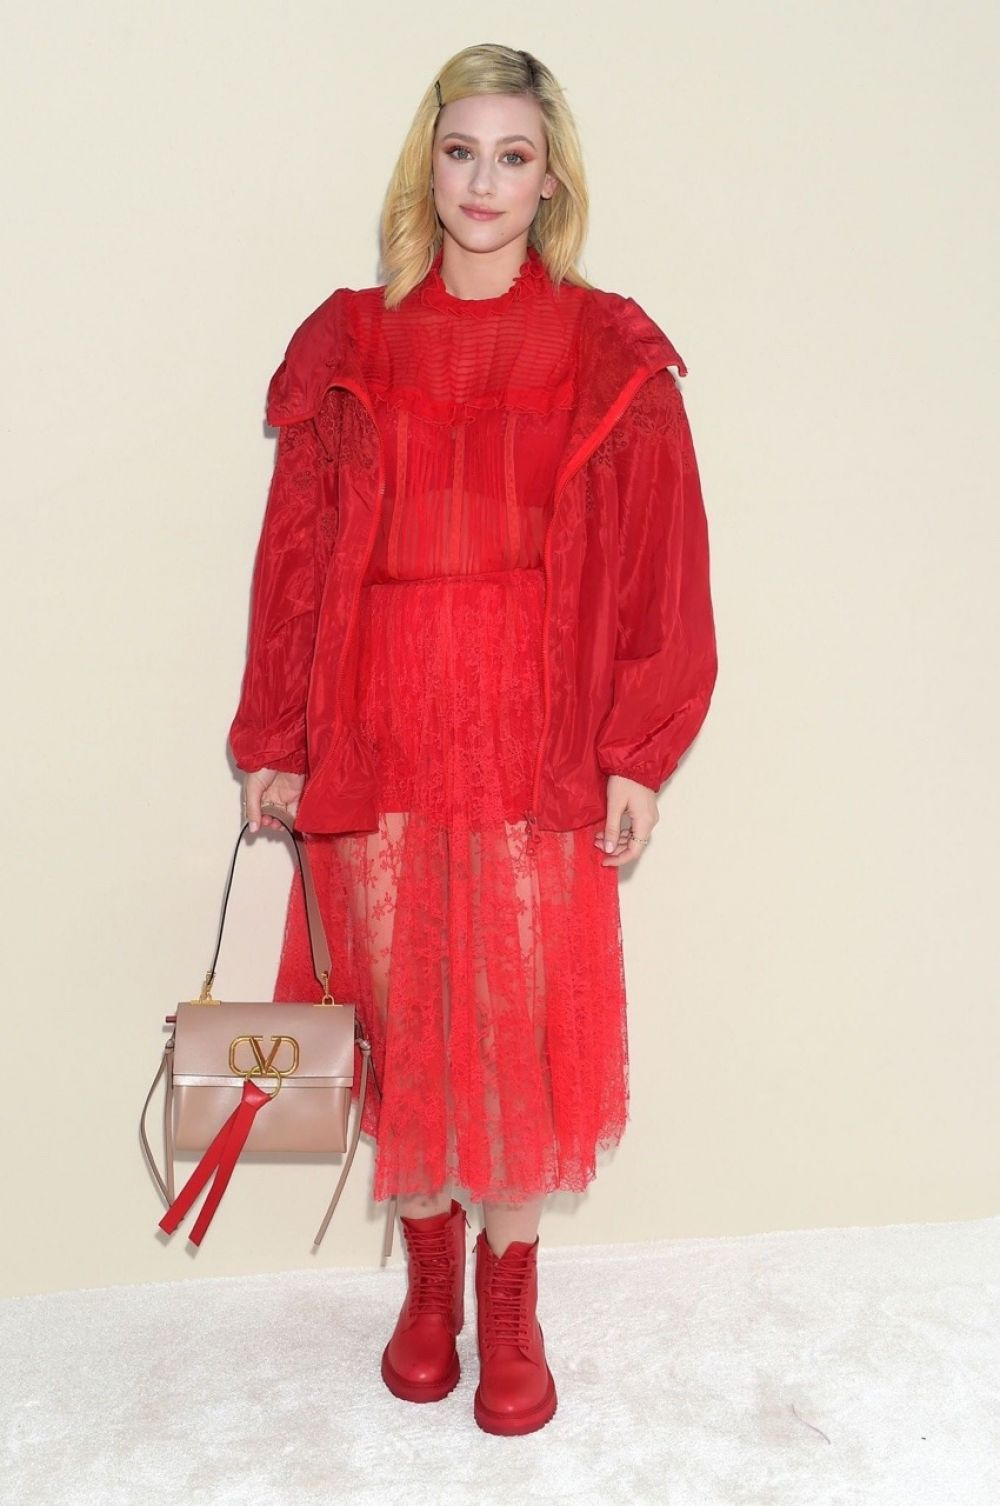 Lili Reinhart at Valentino Show at Paris Fashion Week - 03/02/2019